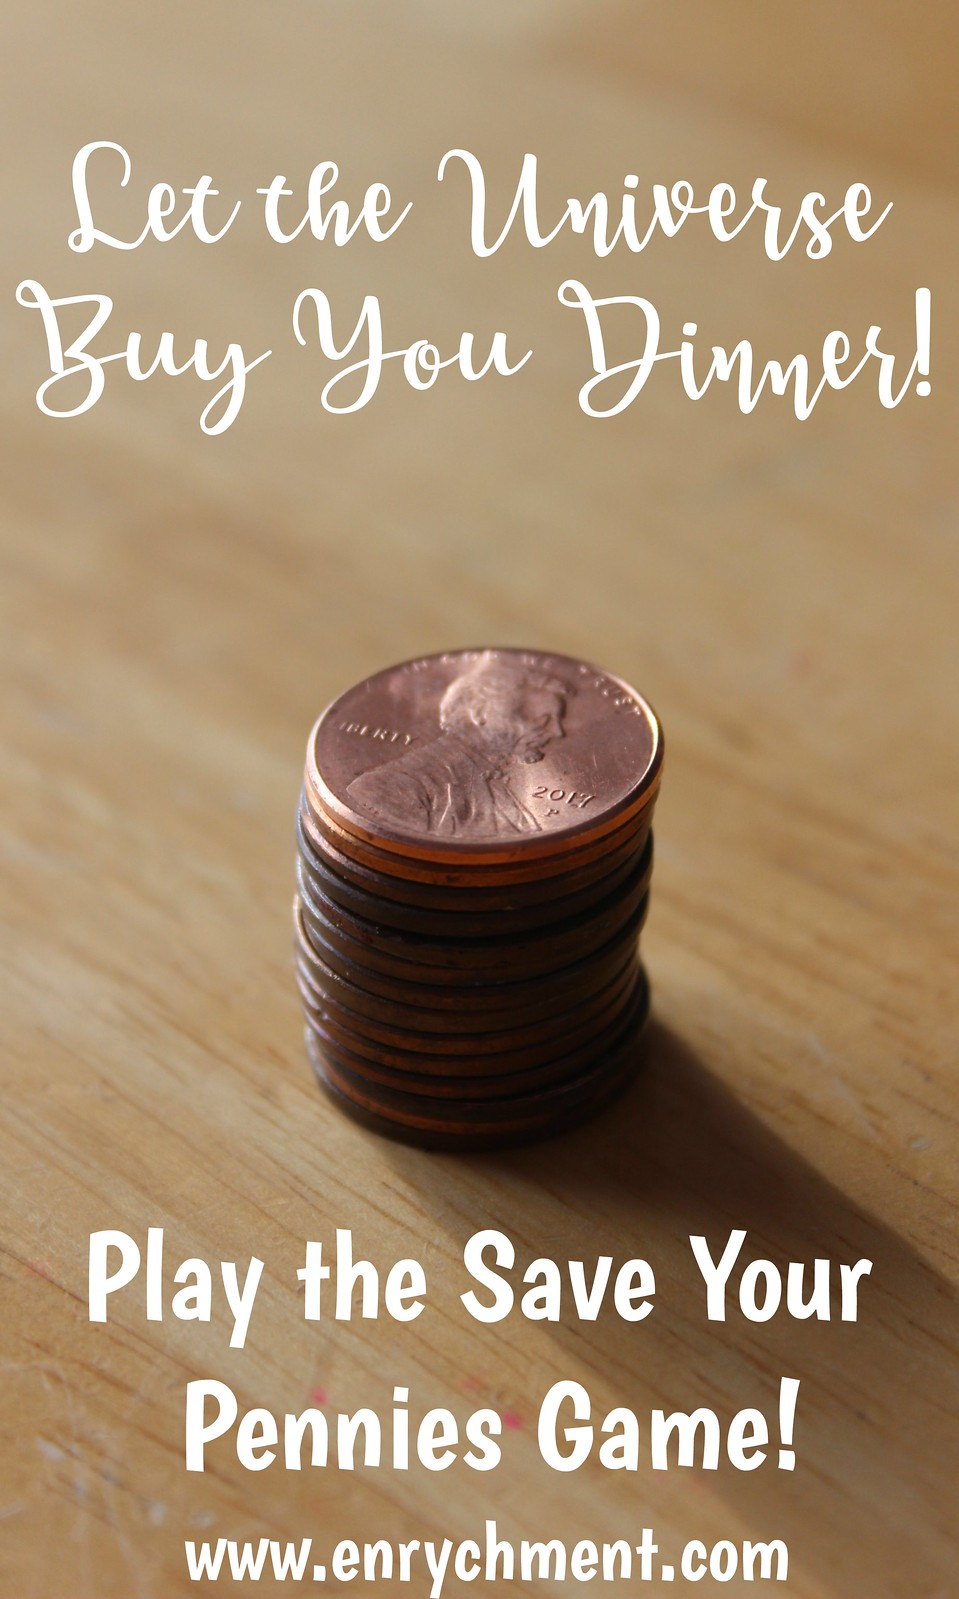 Let the Universe buy you dinner and play the save your pennies game! | www.enrychment.com